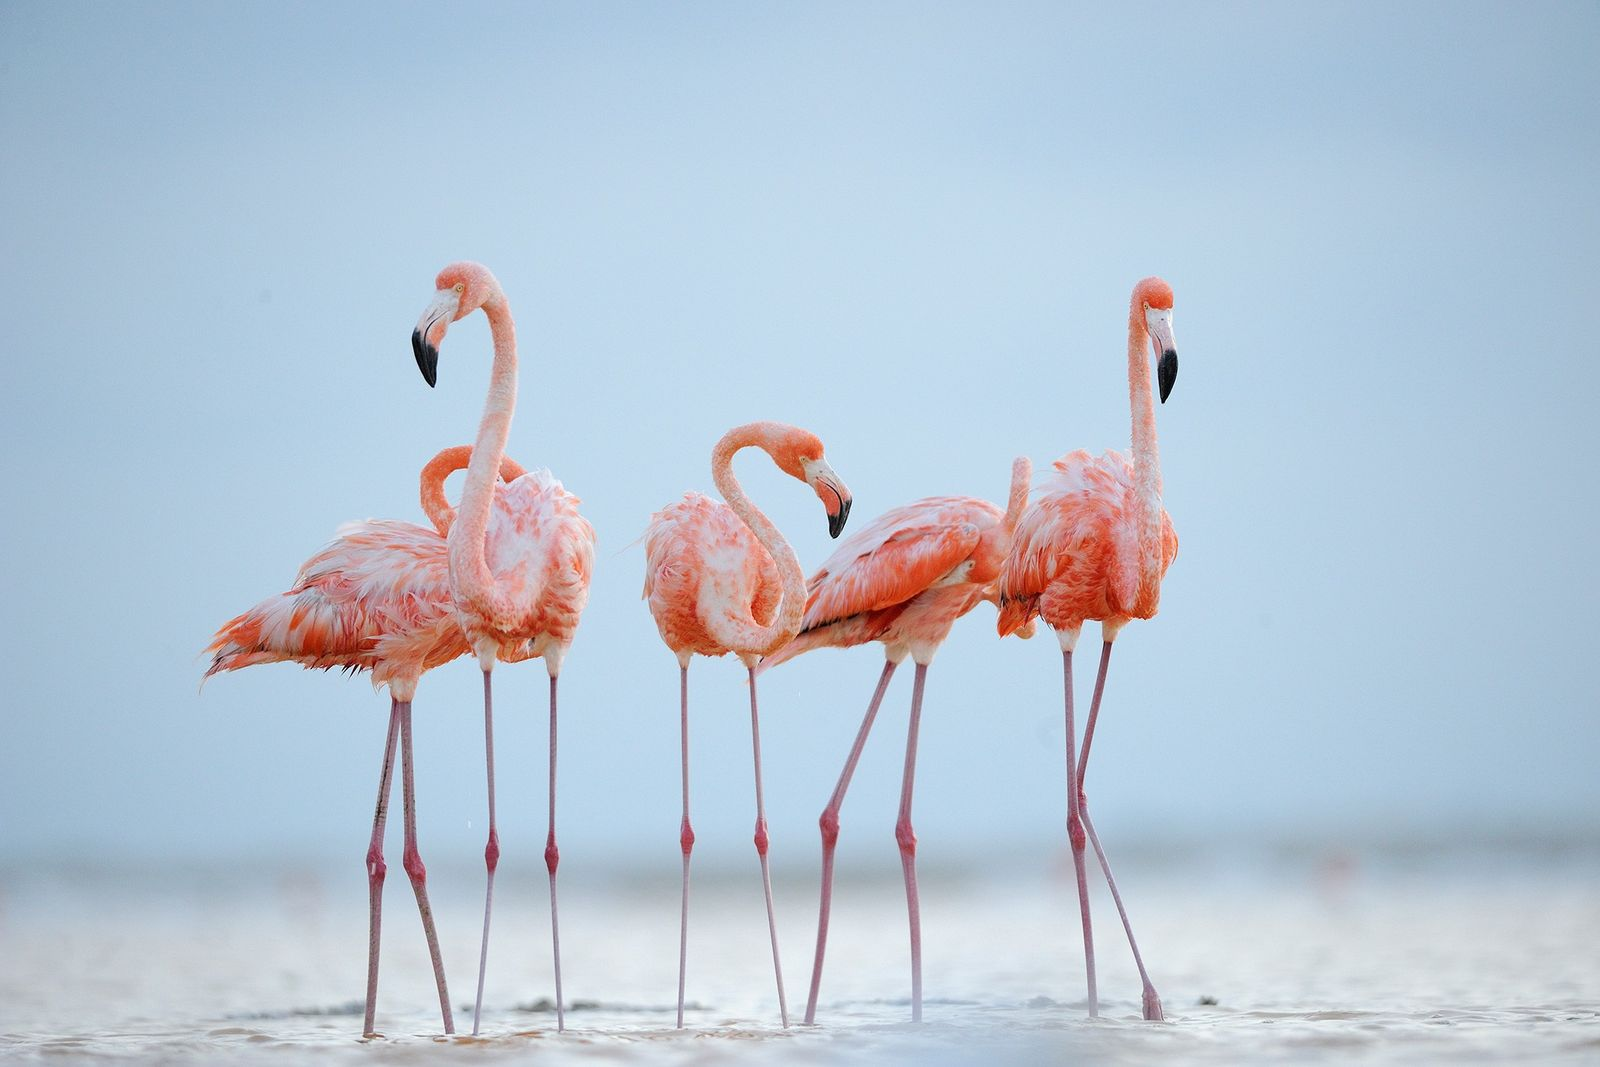 Like humans, flamingos make friends for life